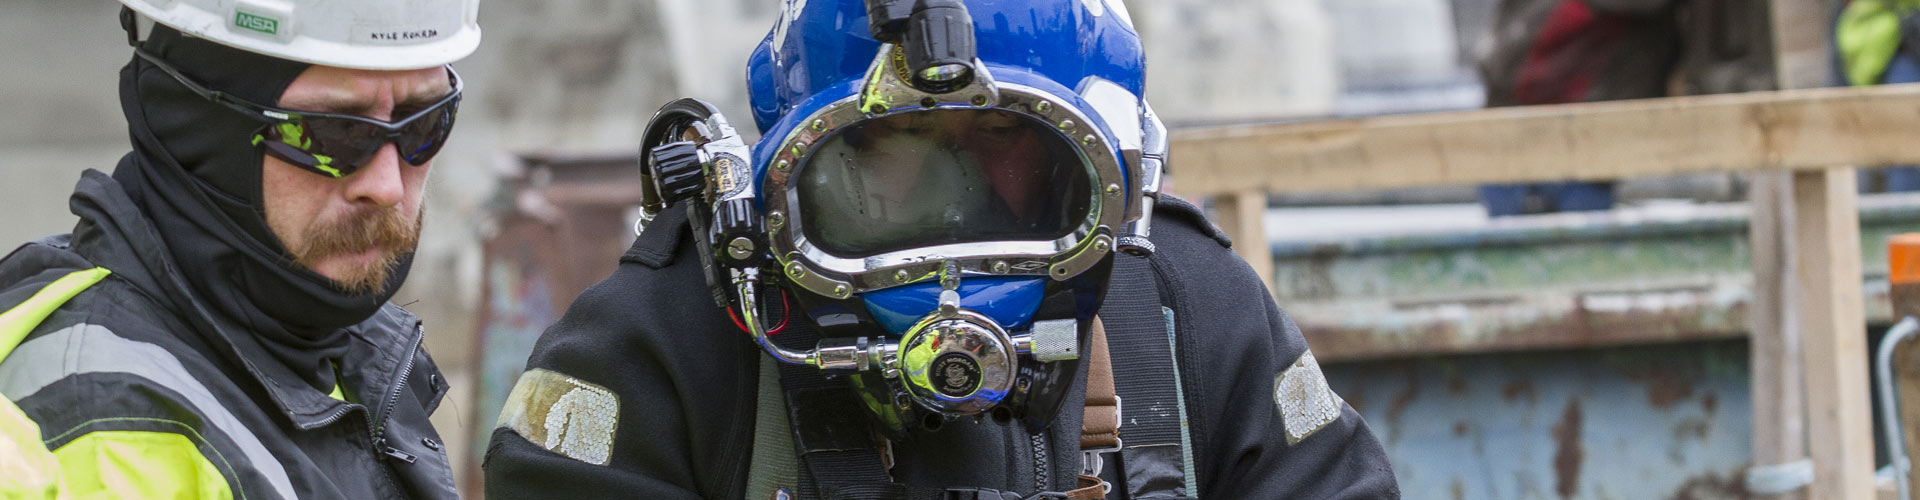 marine construction, dive services, commercial diving, underwater inspections, adci contractors, safe divers, underwater construction